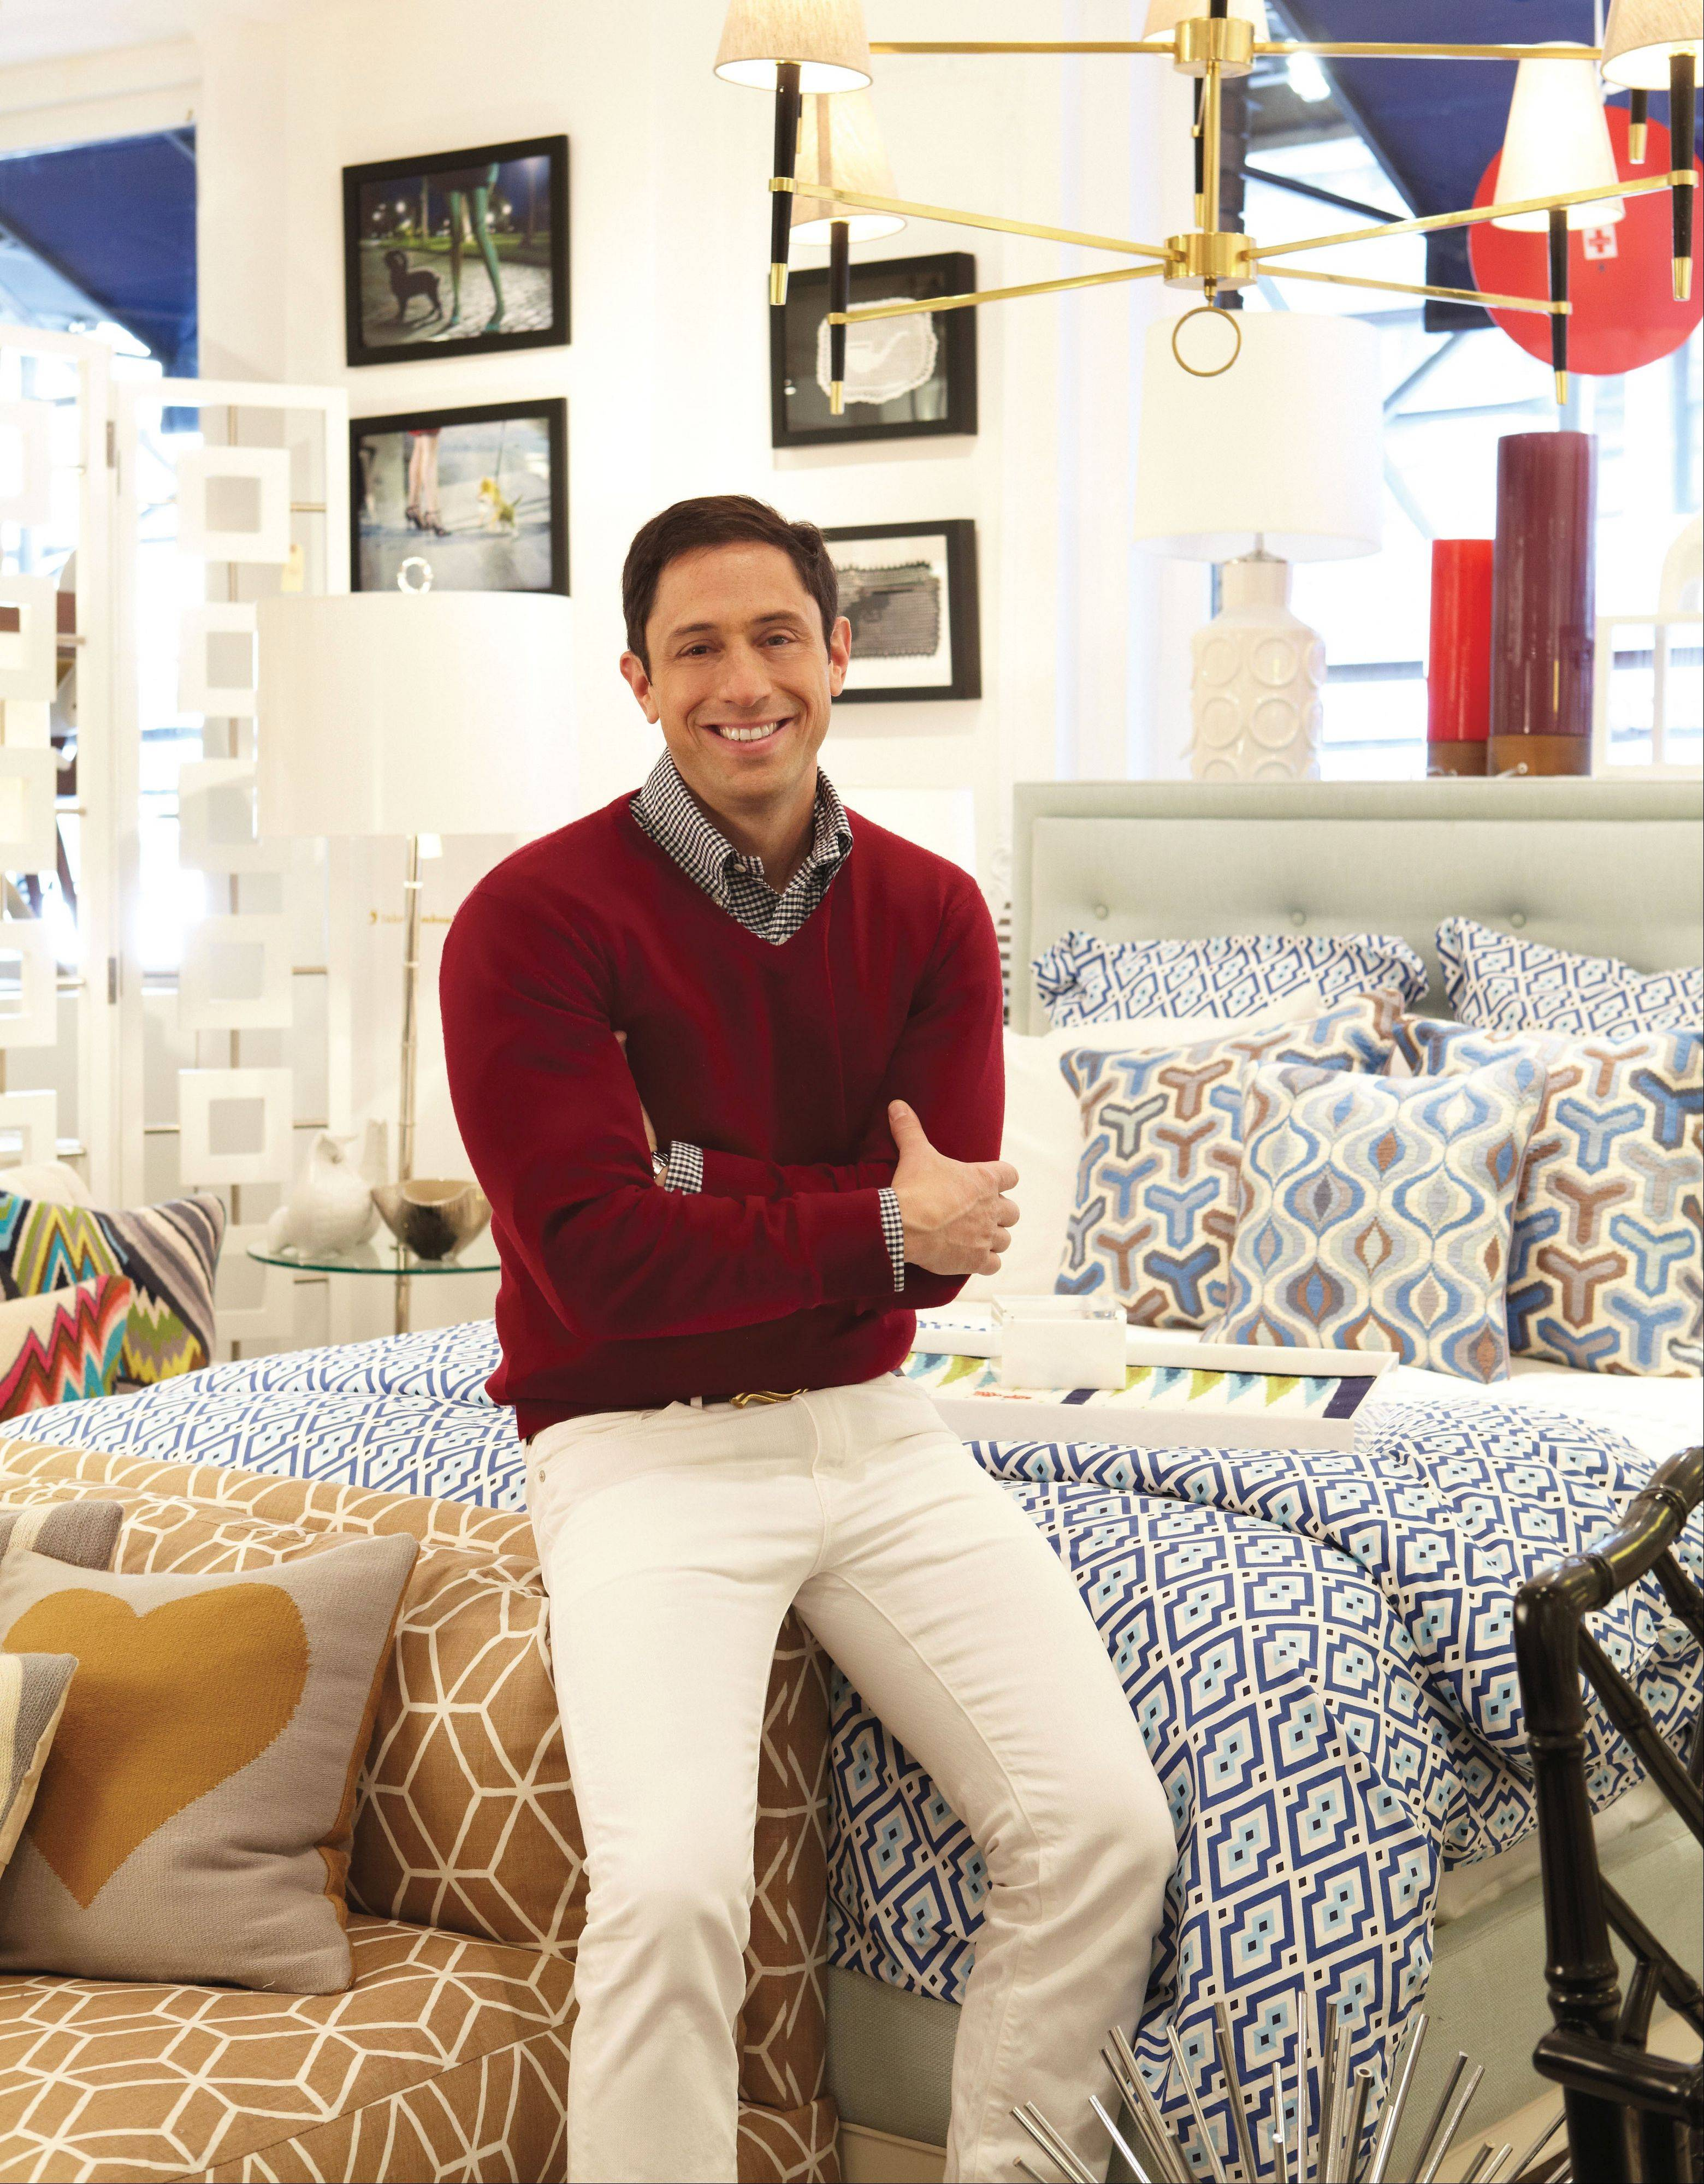 Jonathan Adler fills his home with color year-round, but offers some eclectic tips for colorful holiday decor.